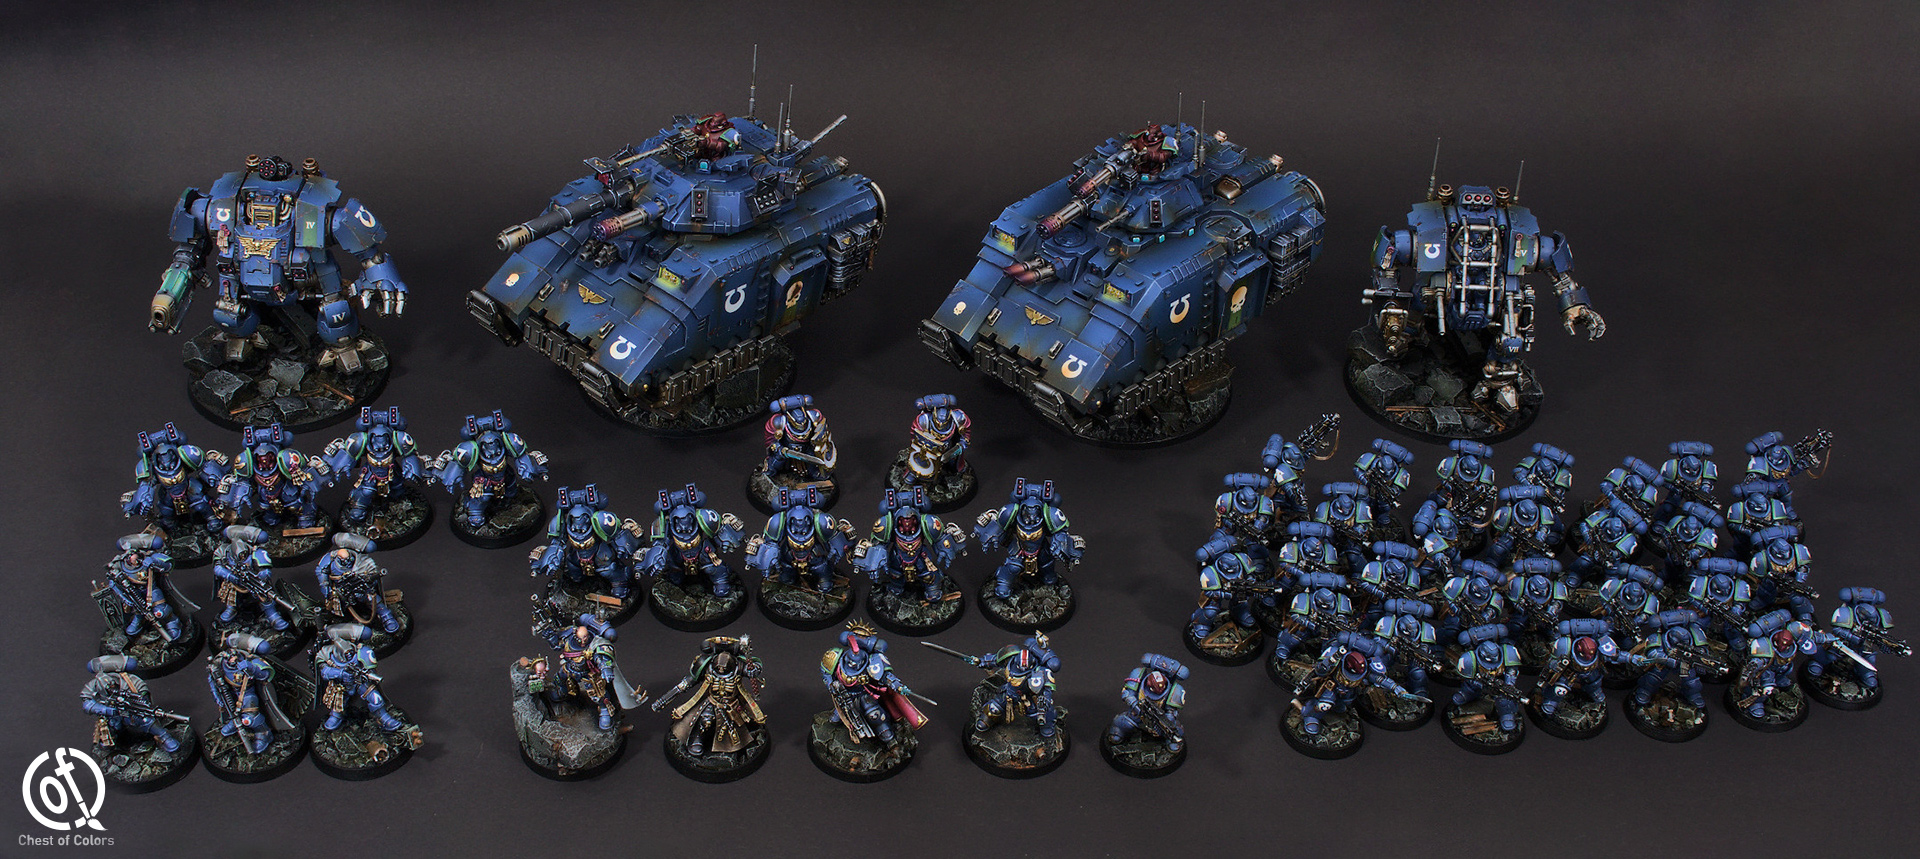 Ultramarines Space Marines army for Warhammer 40.000 – example of our miniature painting service